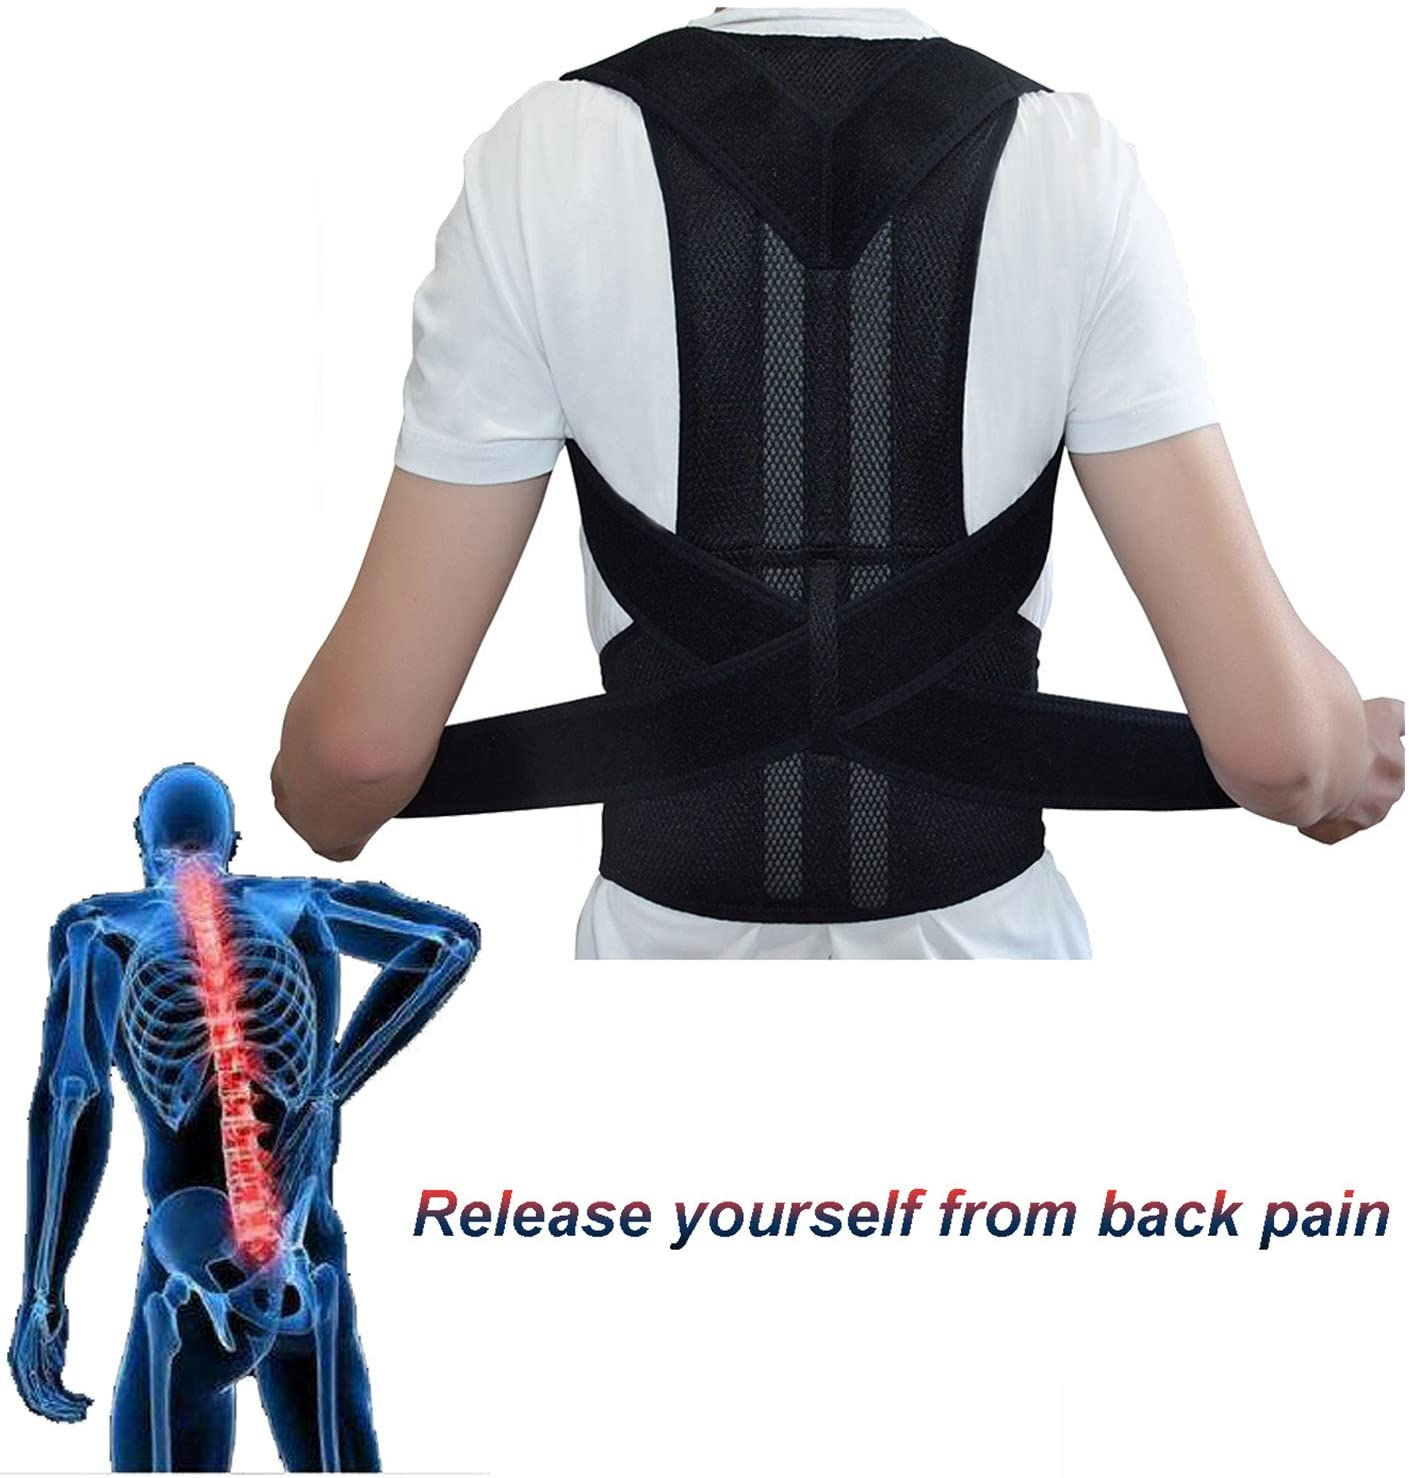 ZSZBACE Posture Corrector Back Brace for Men and Women- Relieve Back Pain, Align Spain, Correct Kyphosis (XXL)